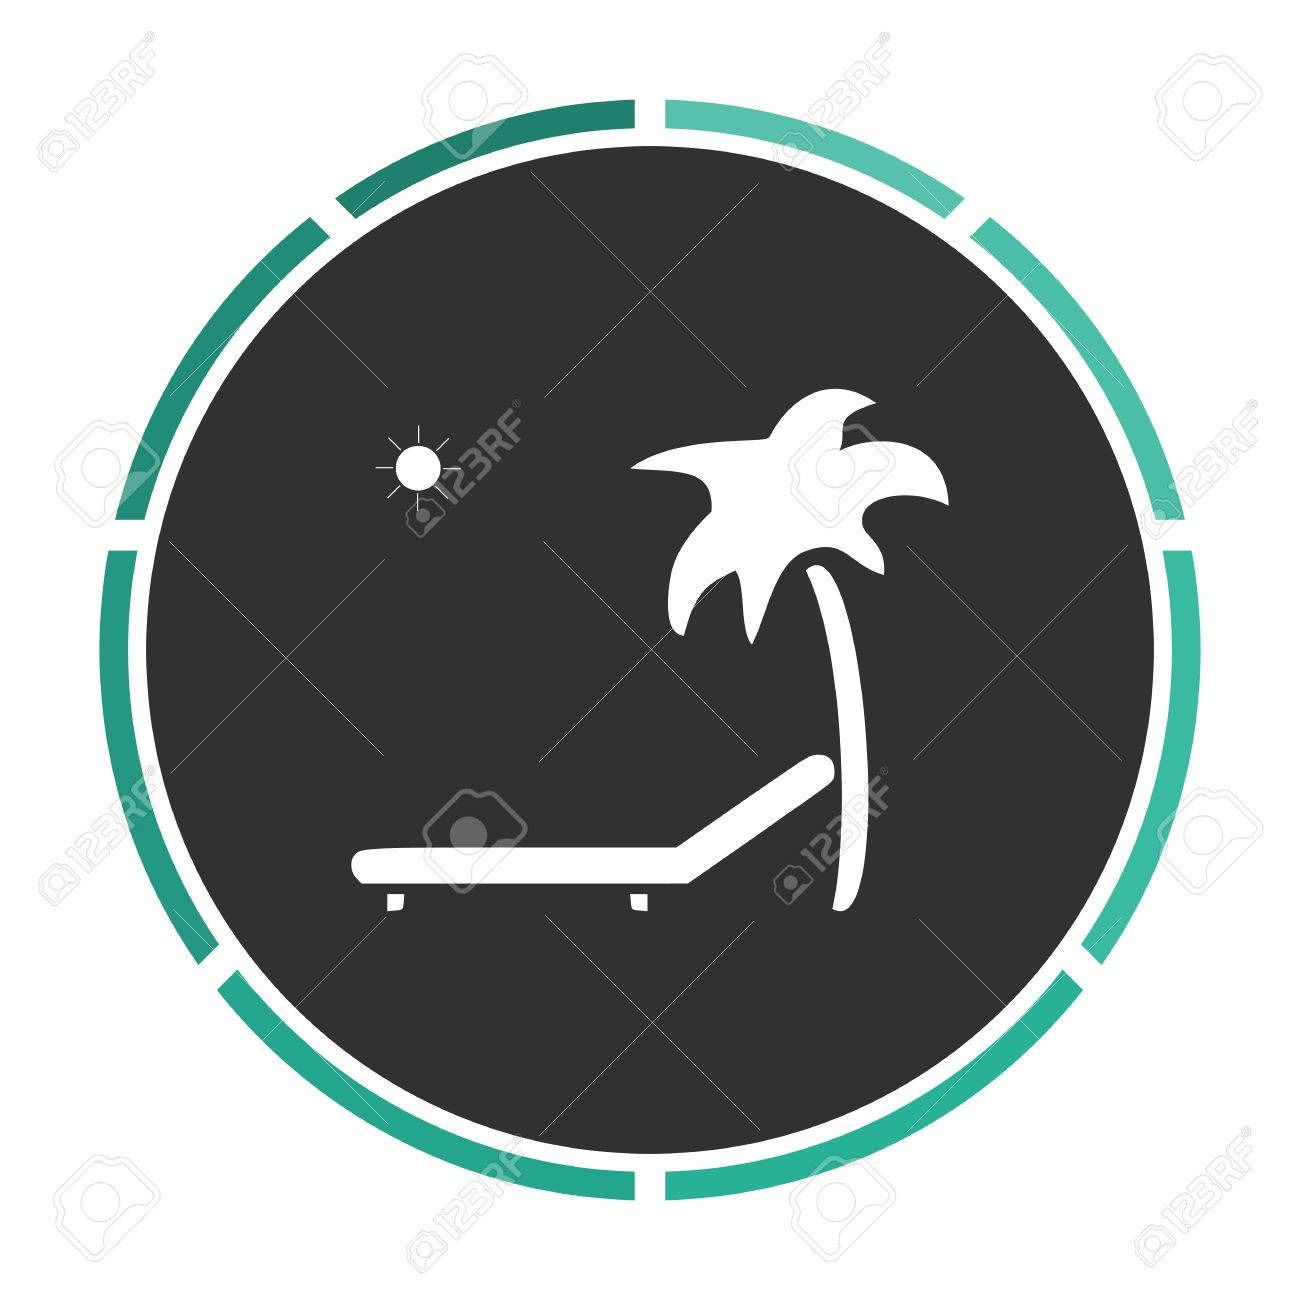 Deck Chair Simple Flat White Vector Pictogram On Black Circle. Illustration  Icon Stock Vector